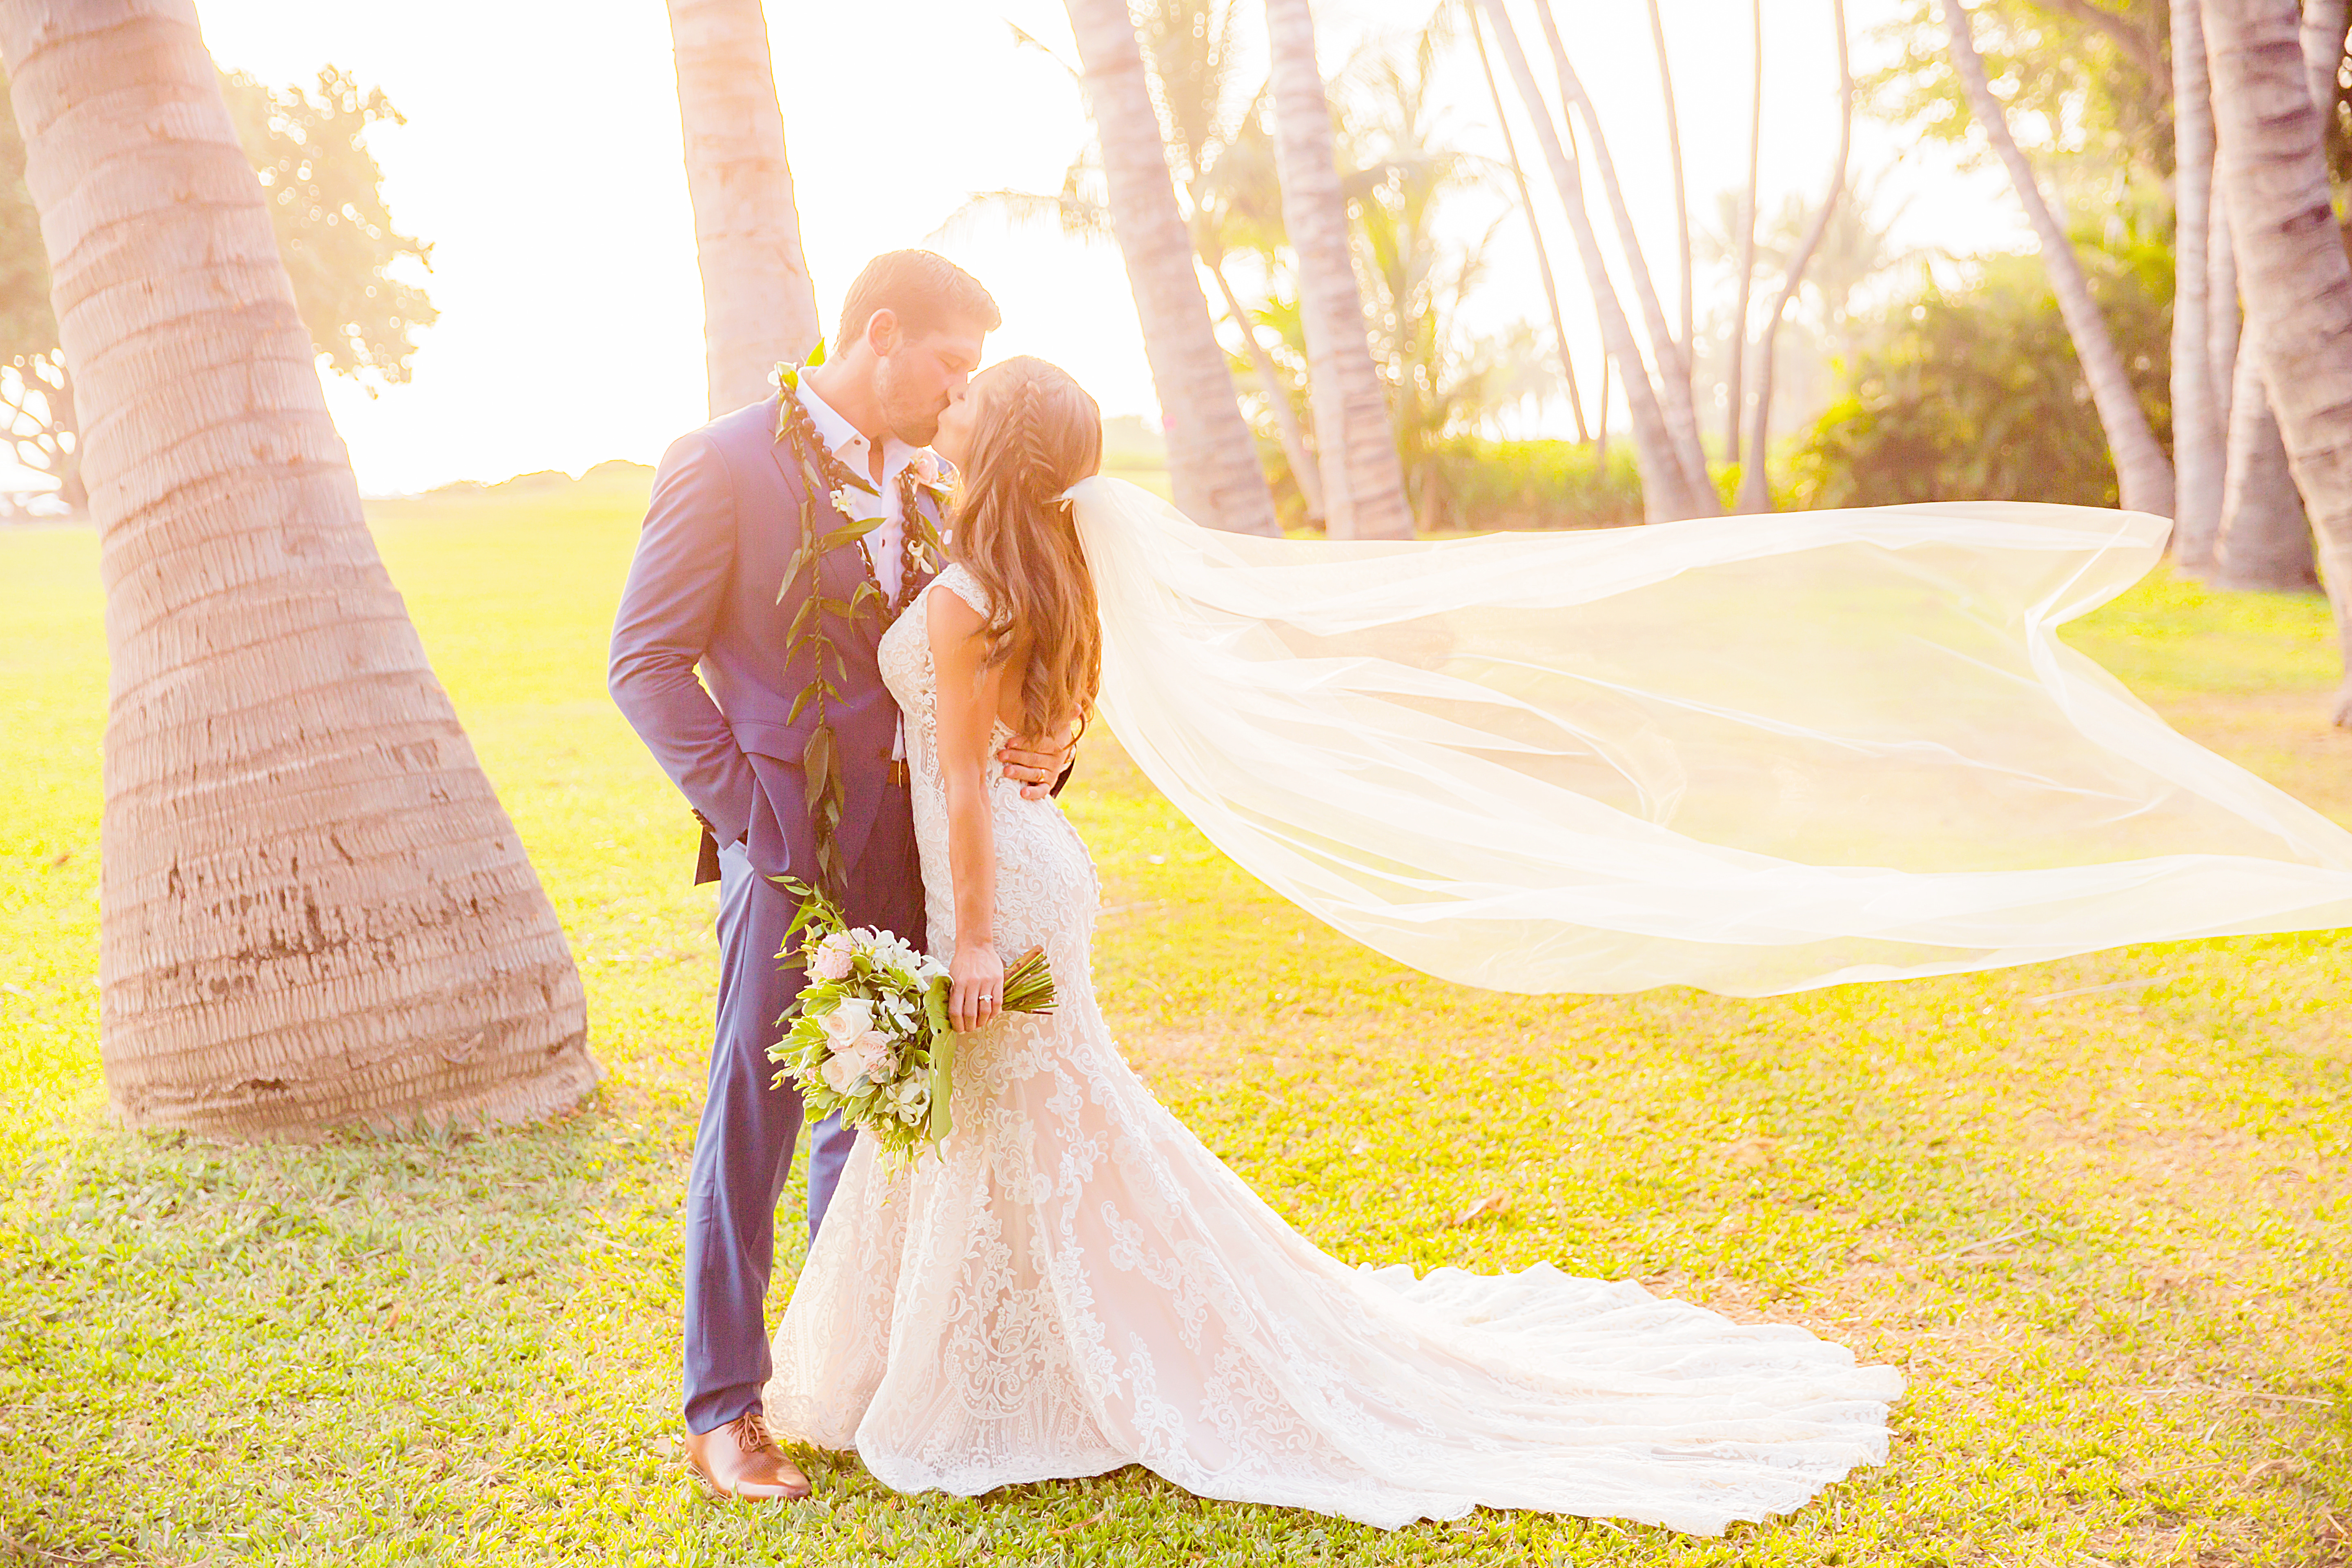 Maui Wedding Photography | Destination Wedding in Maui | Maui Wedding Planner | Maui's Angels blog